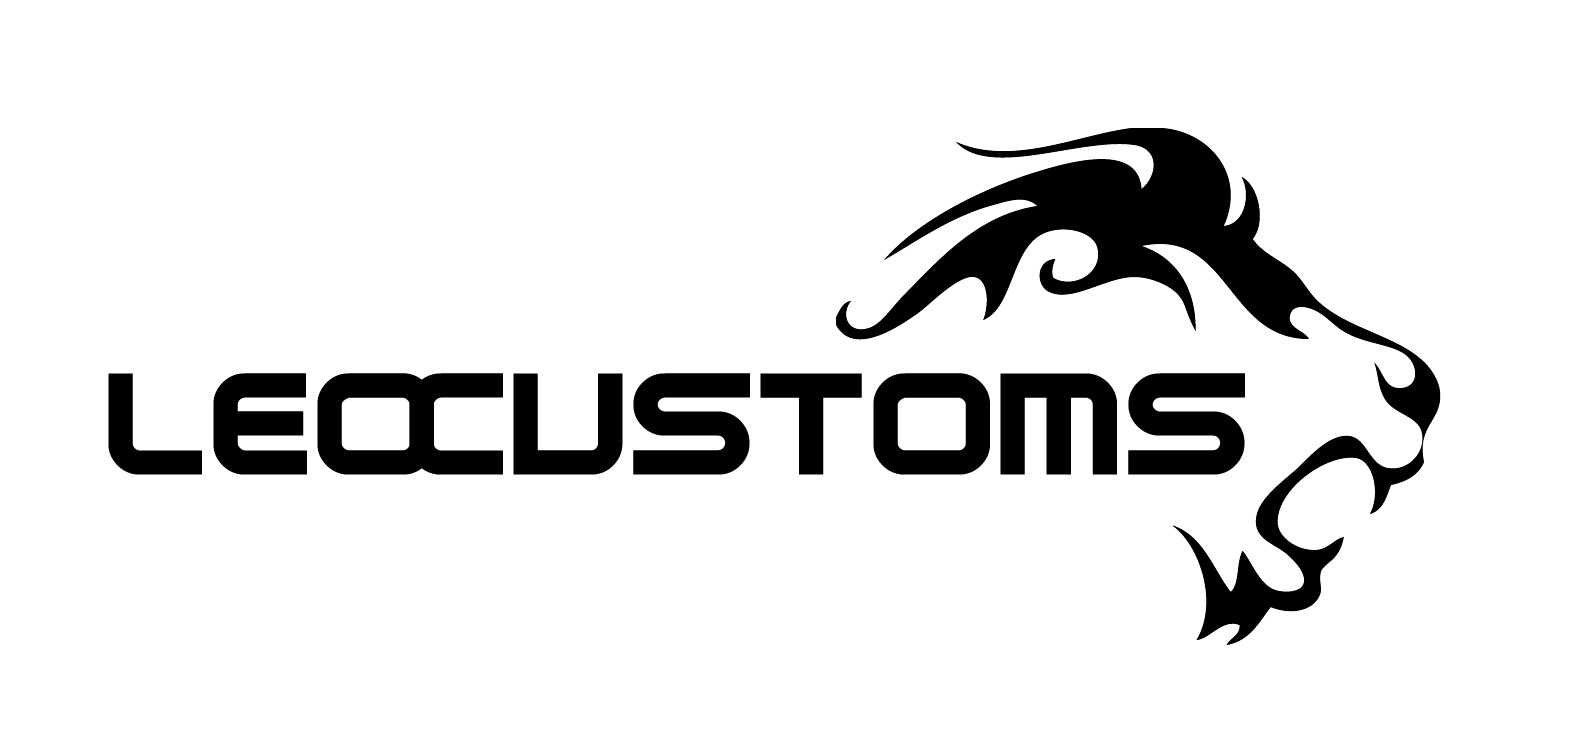 leocustoms logo.jpg